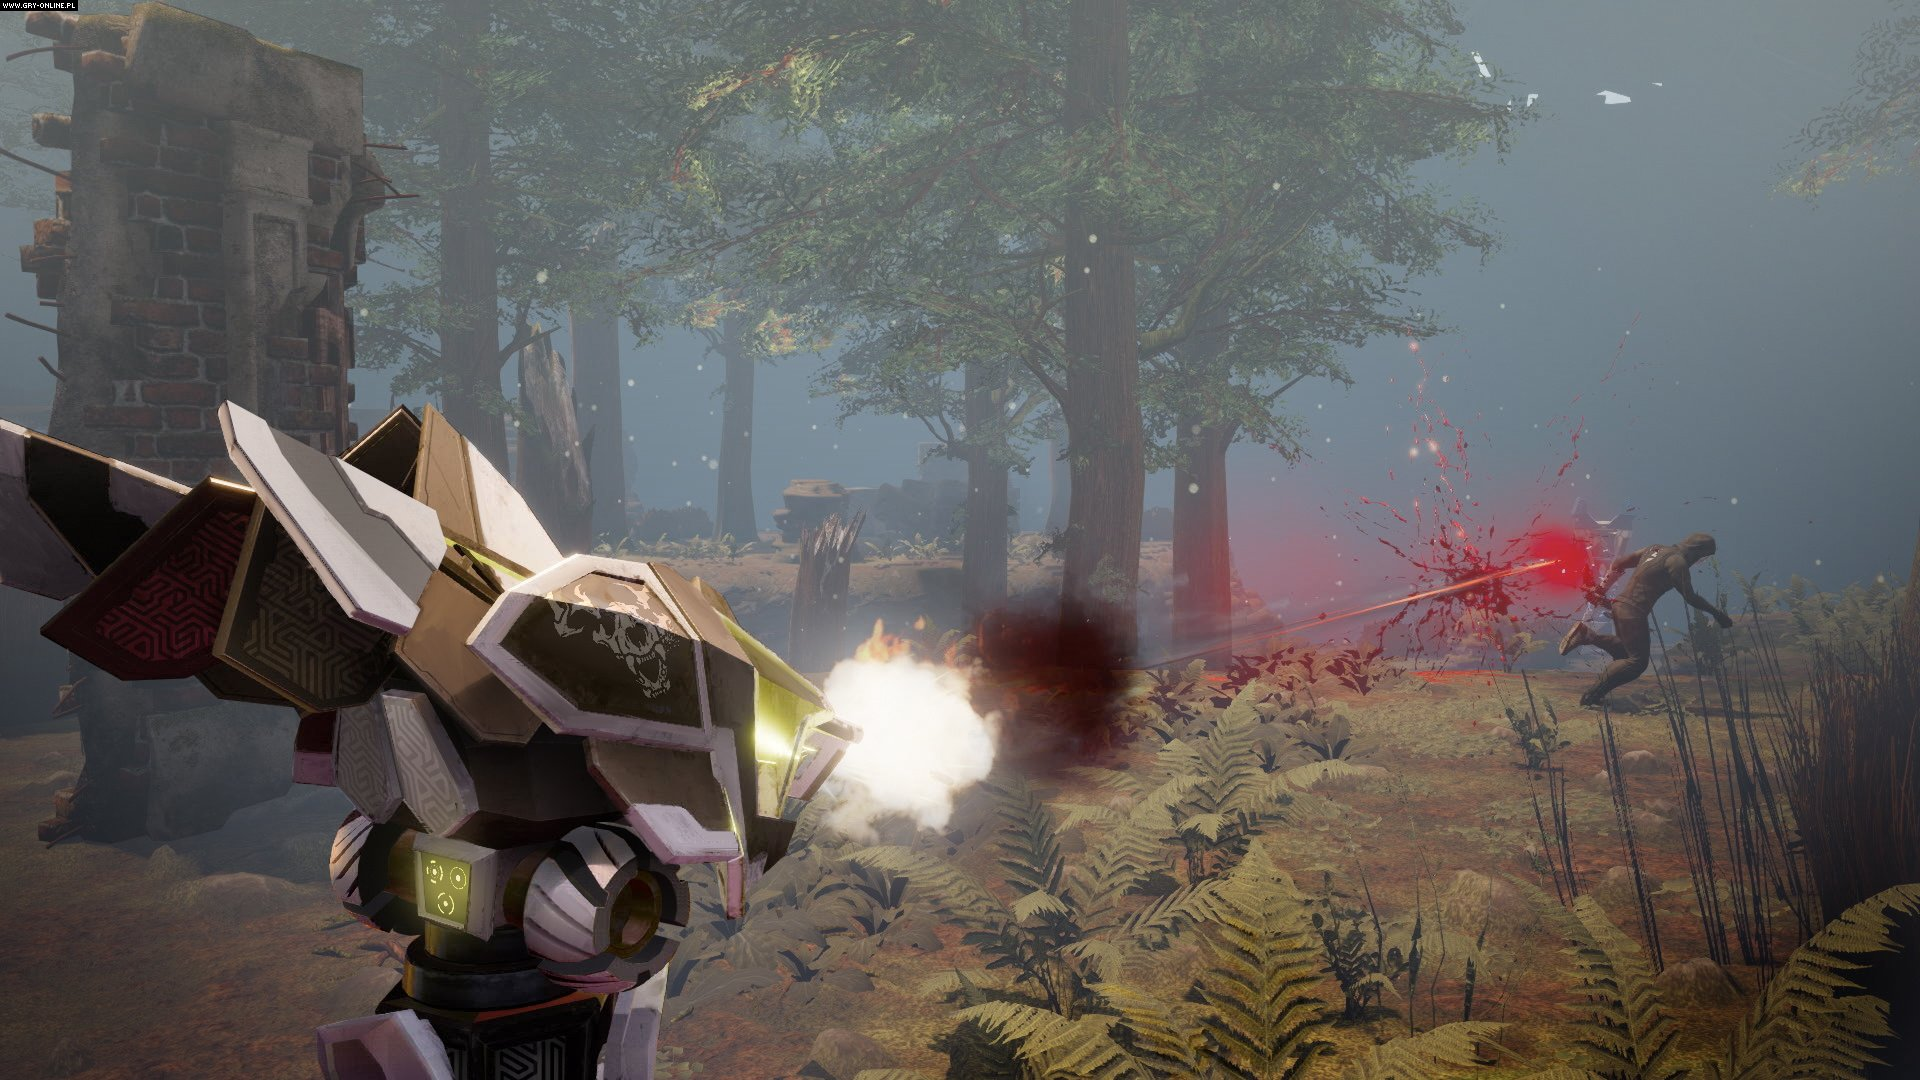 Deathgarden PC, PS4, XONE Games Image 3/16, Artificial Mind & Movement/Behaviour Interactive